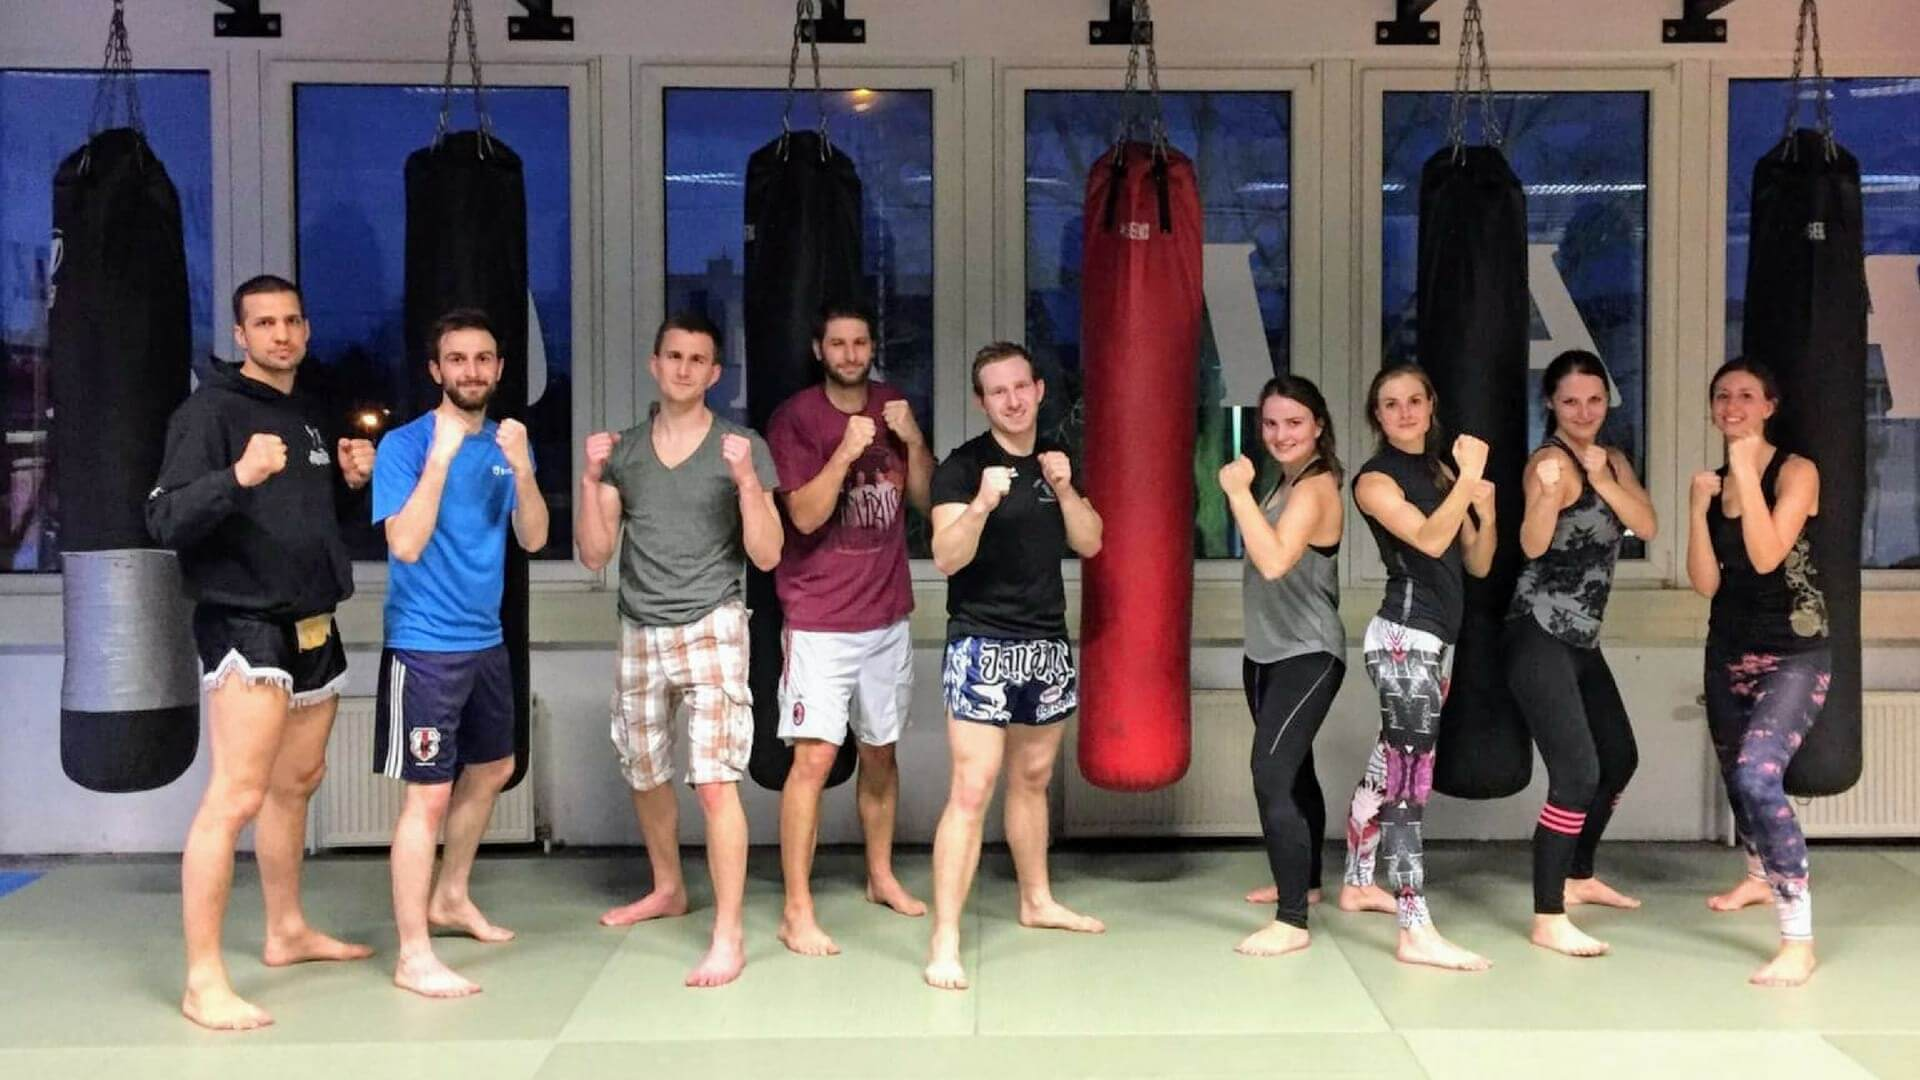 trying muay thai as tractive team sport activities